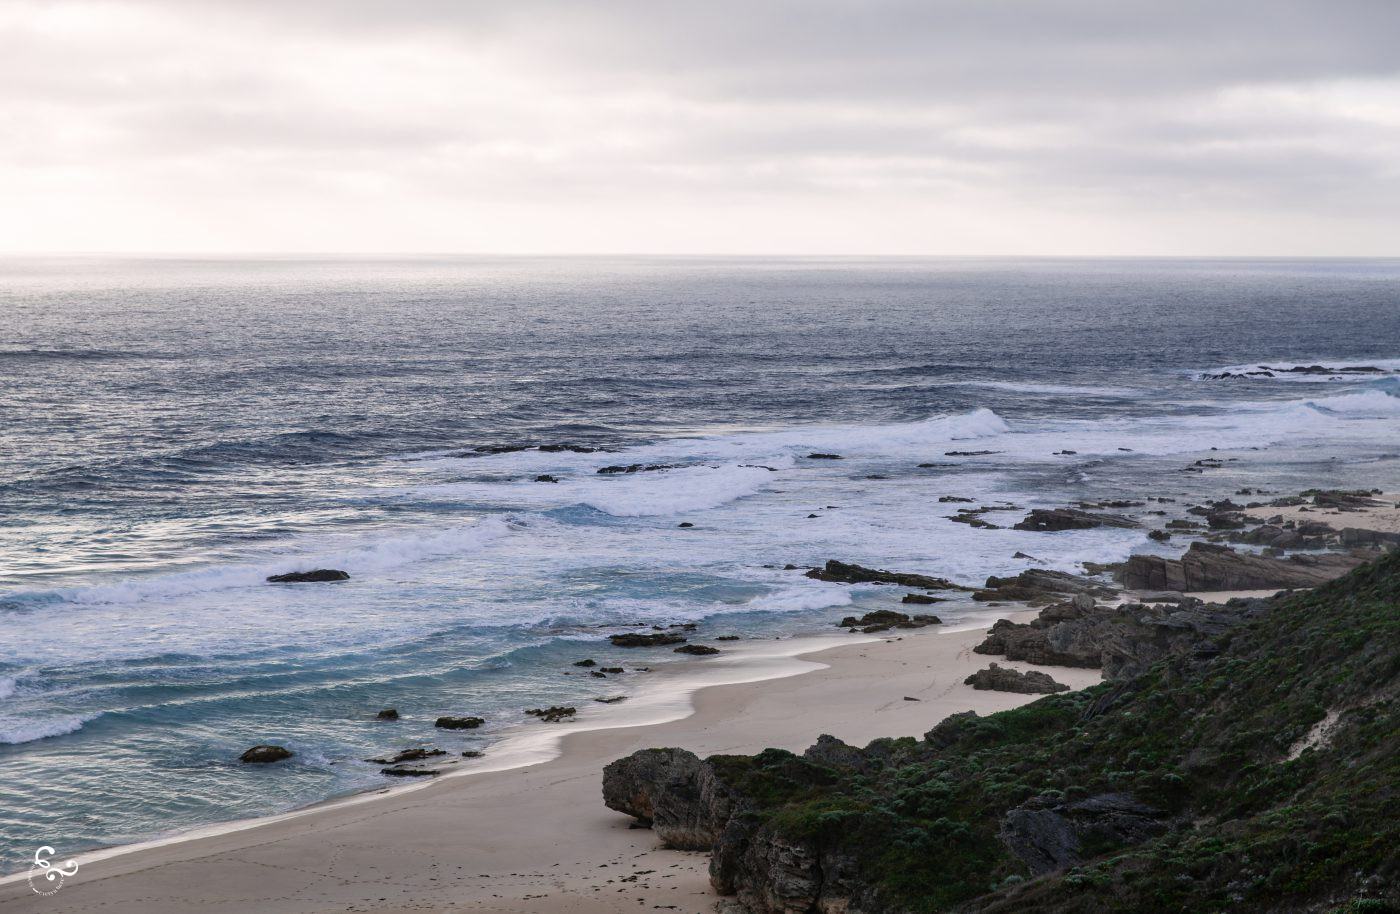 Margaret River Beaches Surfing Western Australia Perth Nowhere & Everywhere Lis Dingjan Photography Prints #justanotherdayinwa South West